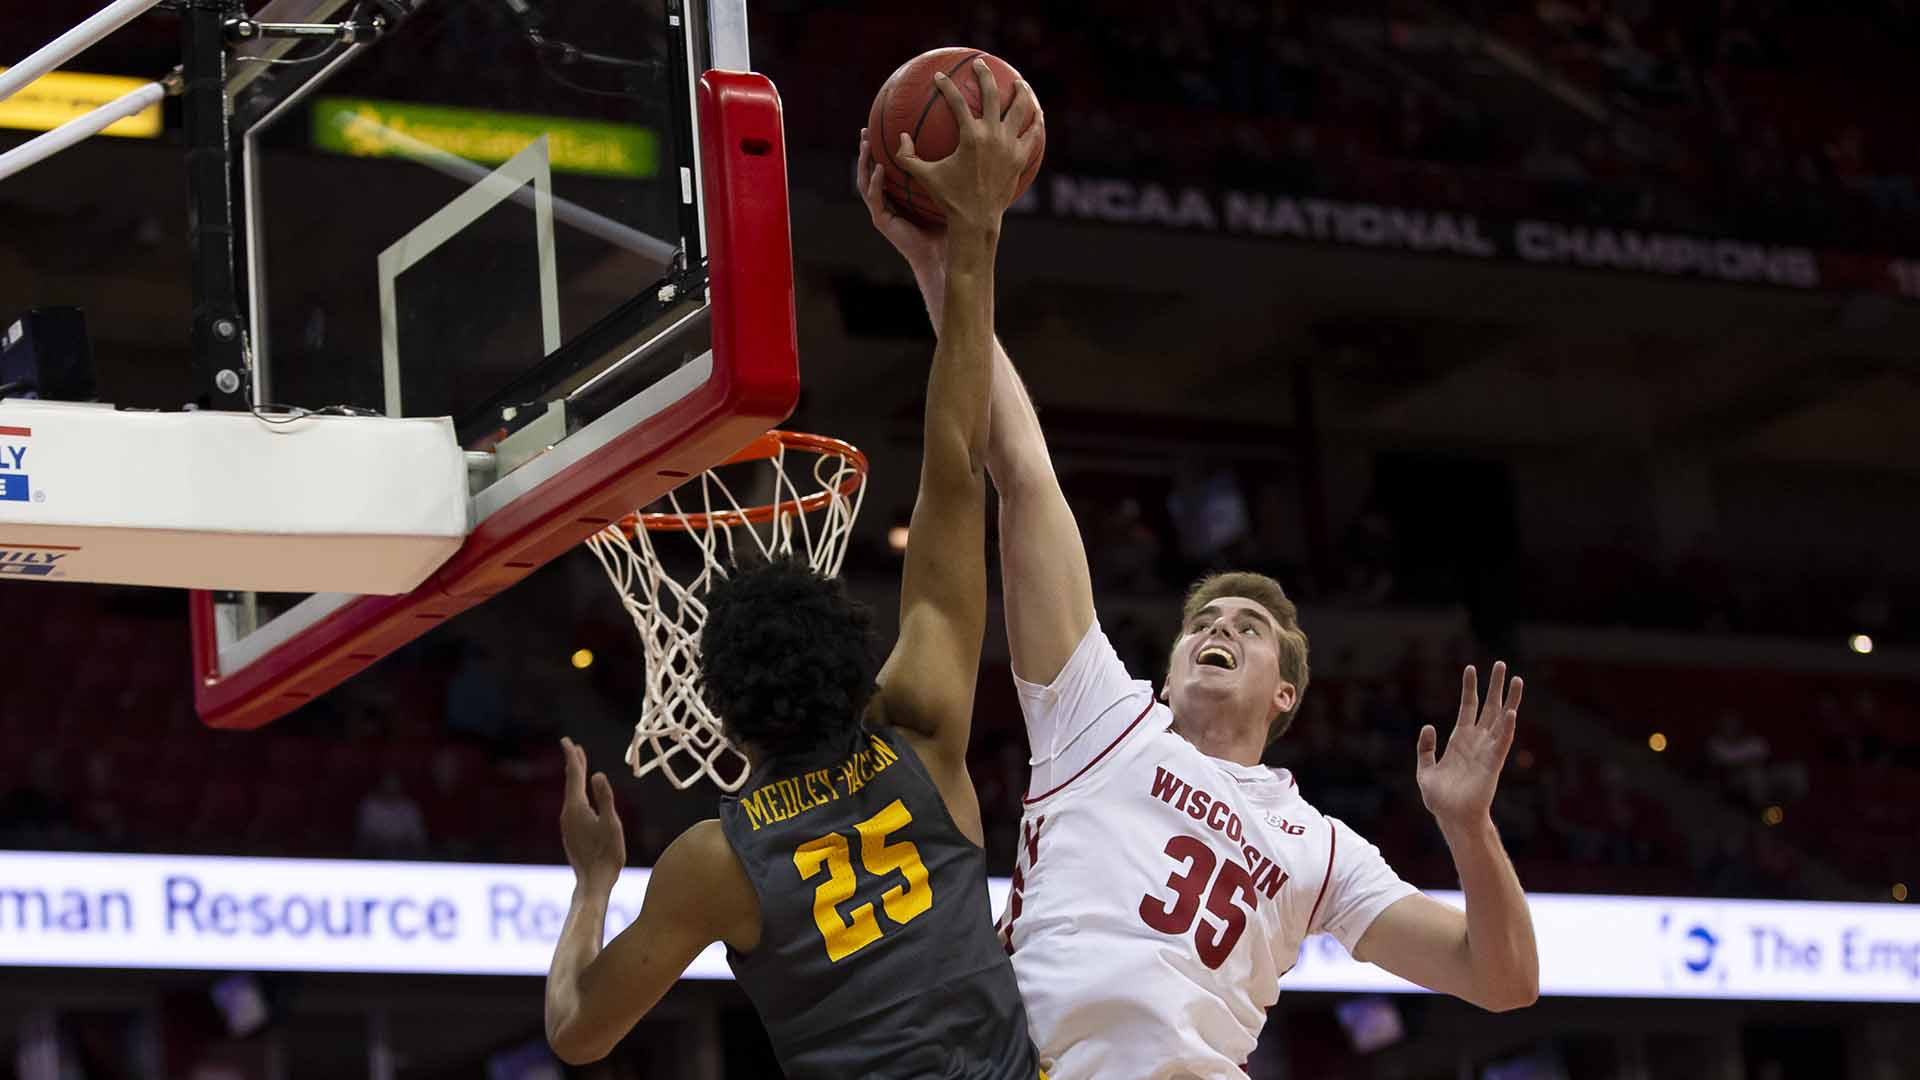 November 6, 2018: Wisconsin Badgers forward Nate Reuvers #35 blocks the shot of Coppin State Eagles center Brendan Medley-Bacon #25 late in the game during the NCAA Basketball game between the Coppin State Eagles and the Wisconsin Badgers at the Kohl Center in Madison, WI. Wisconsin defeated Coppin State 85-63. John Fisher/CSM(Credit Image: © Cal Sport Media)